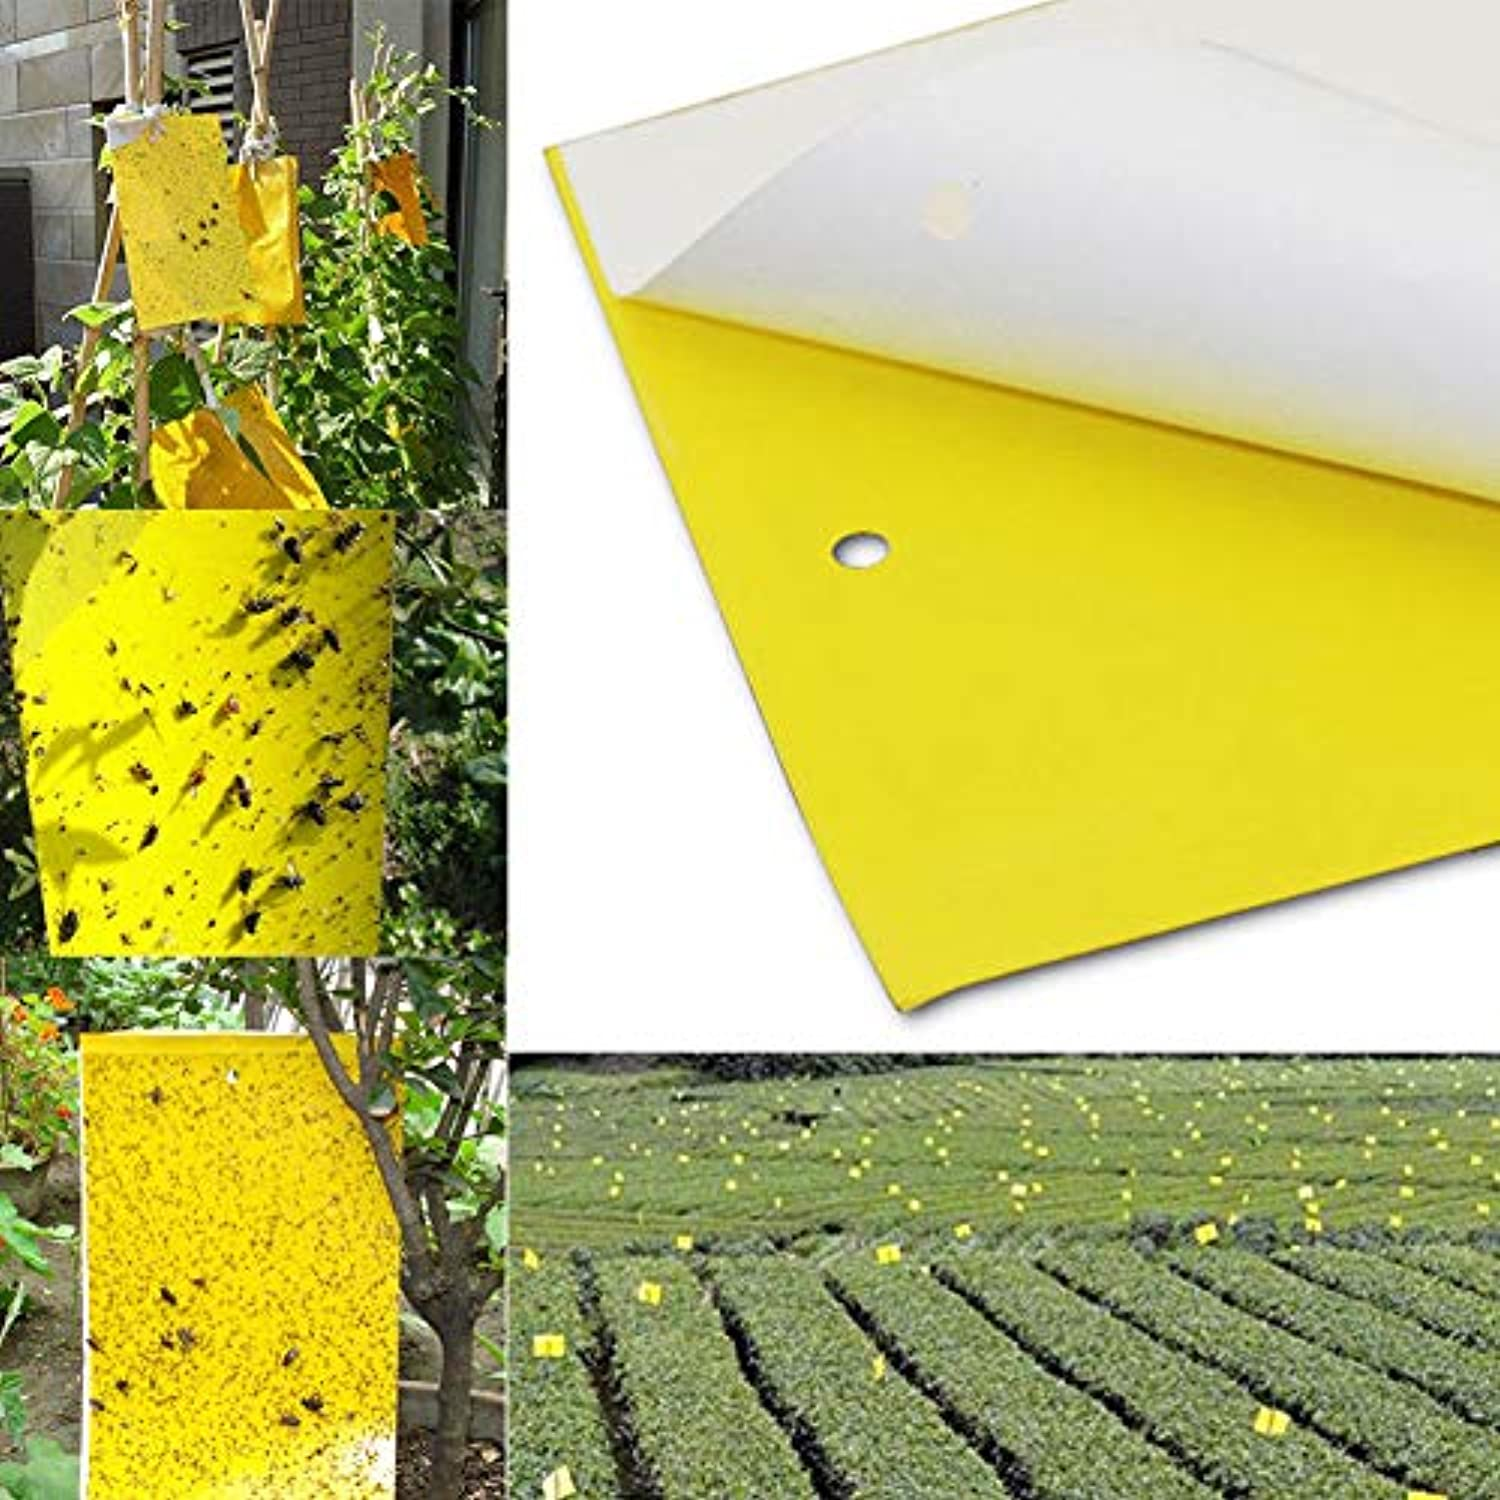 10 20 50PCS Yellow Sticky Insect Traps (25x15cm) Catch Flying Greenhouse Pests Control Strong Flies Traps Bedbugs Sticky Board   50pcs